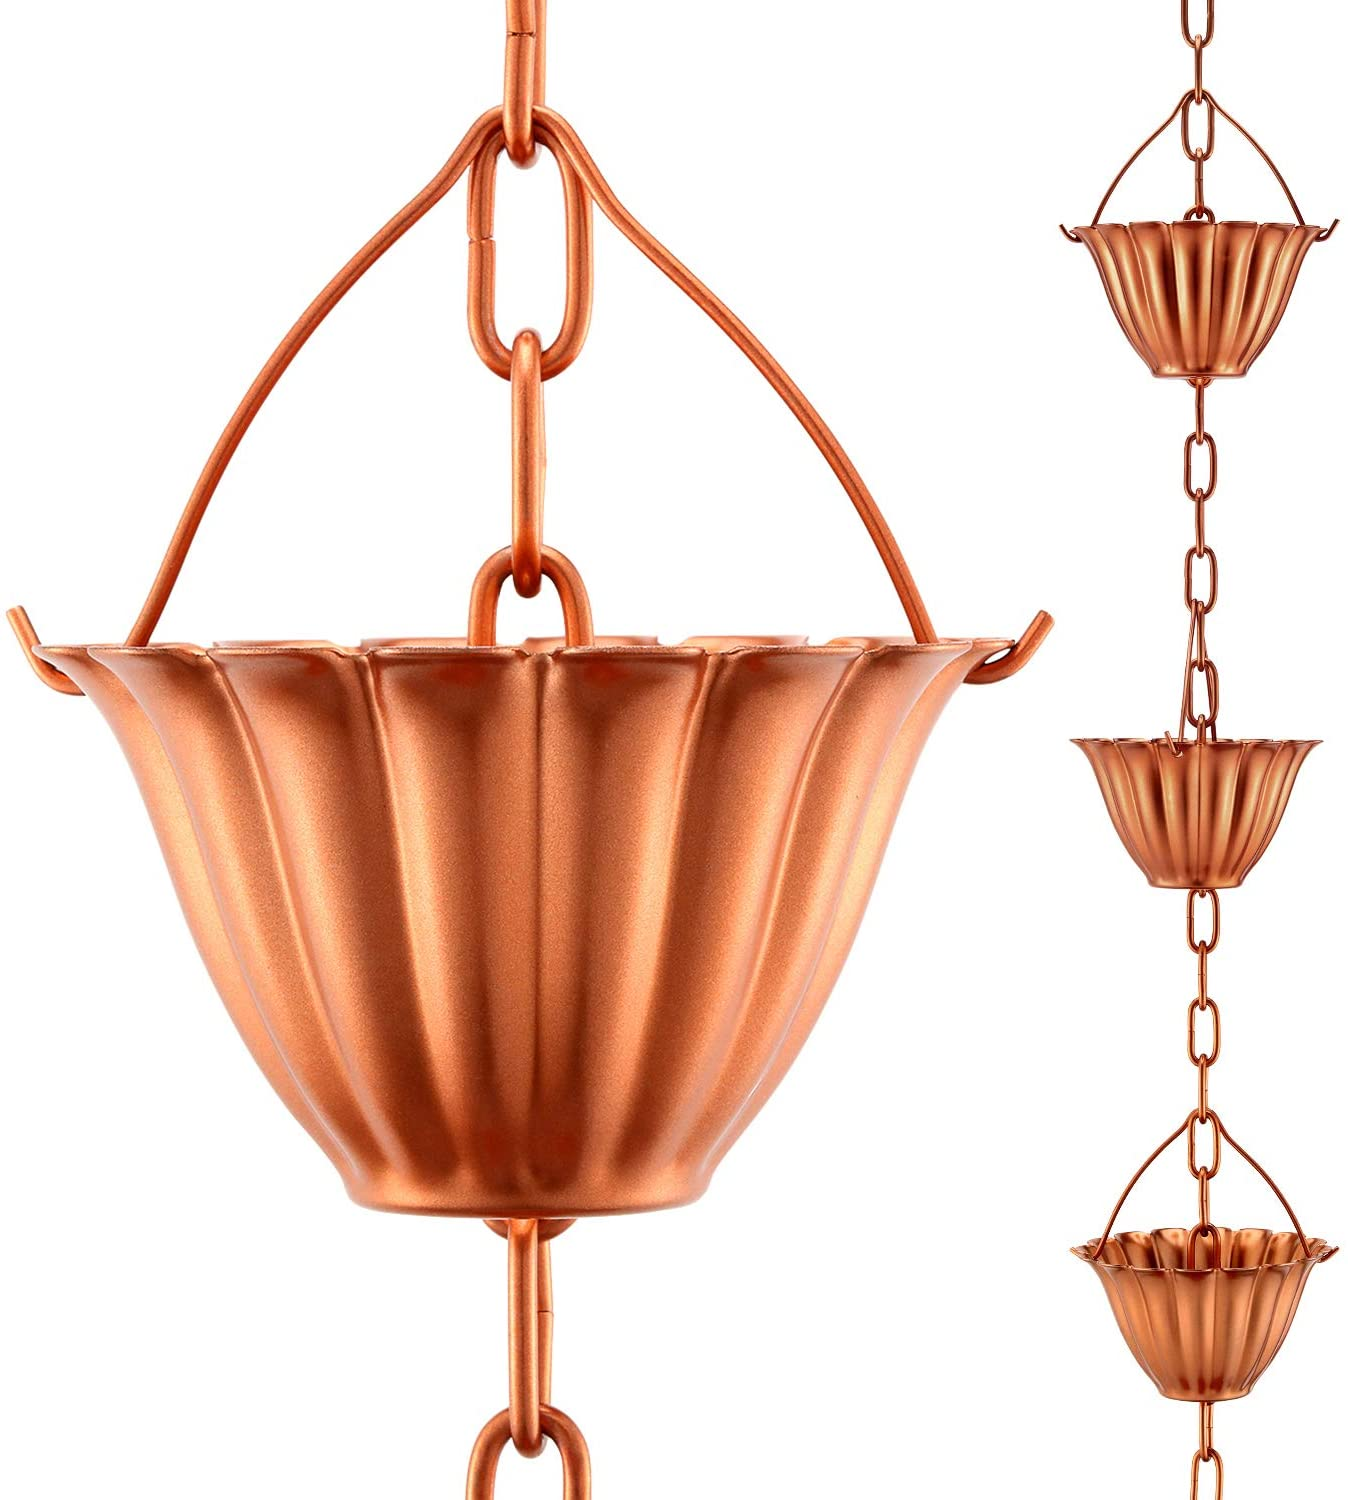 OAK LEAF Rain Chain Set, 8.5ft Copper Plated Rain Chain for Gutters with Adapter, Lotus Rain Chain Cups to Replace Gutter Downspout, Divert Water and Home Display, 12 Cups, Adjustable, Rose Gold